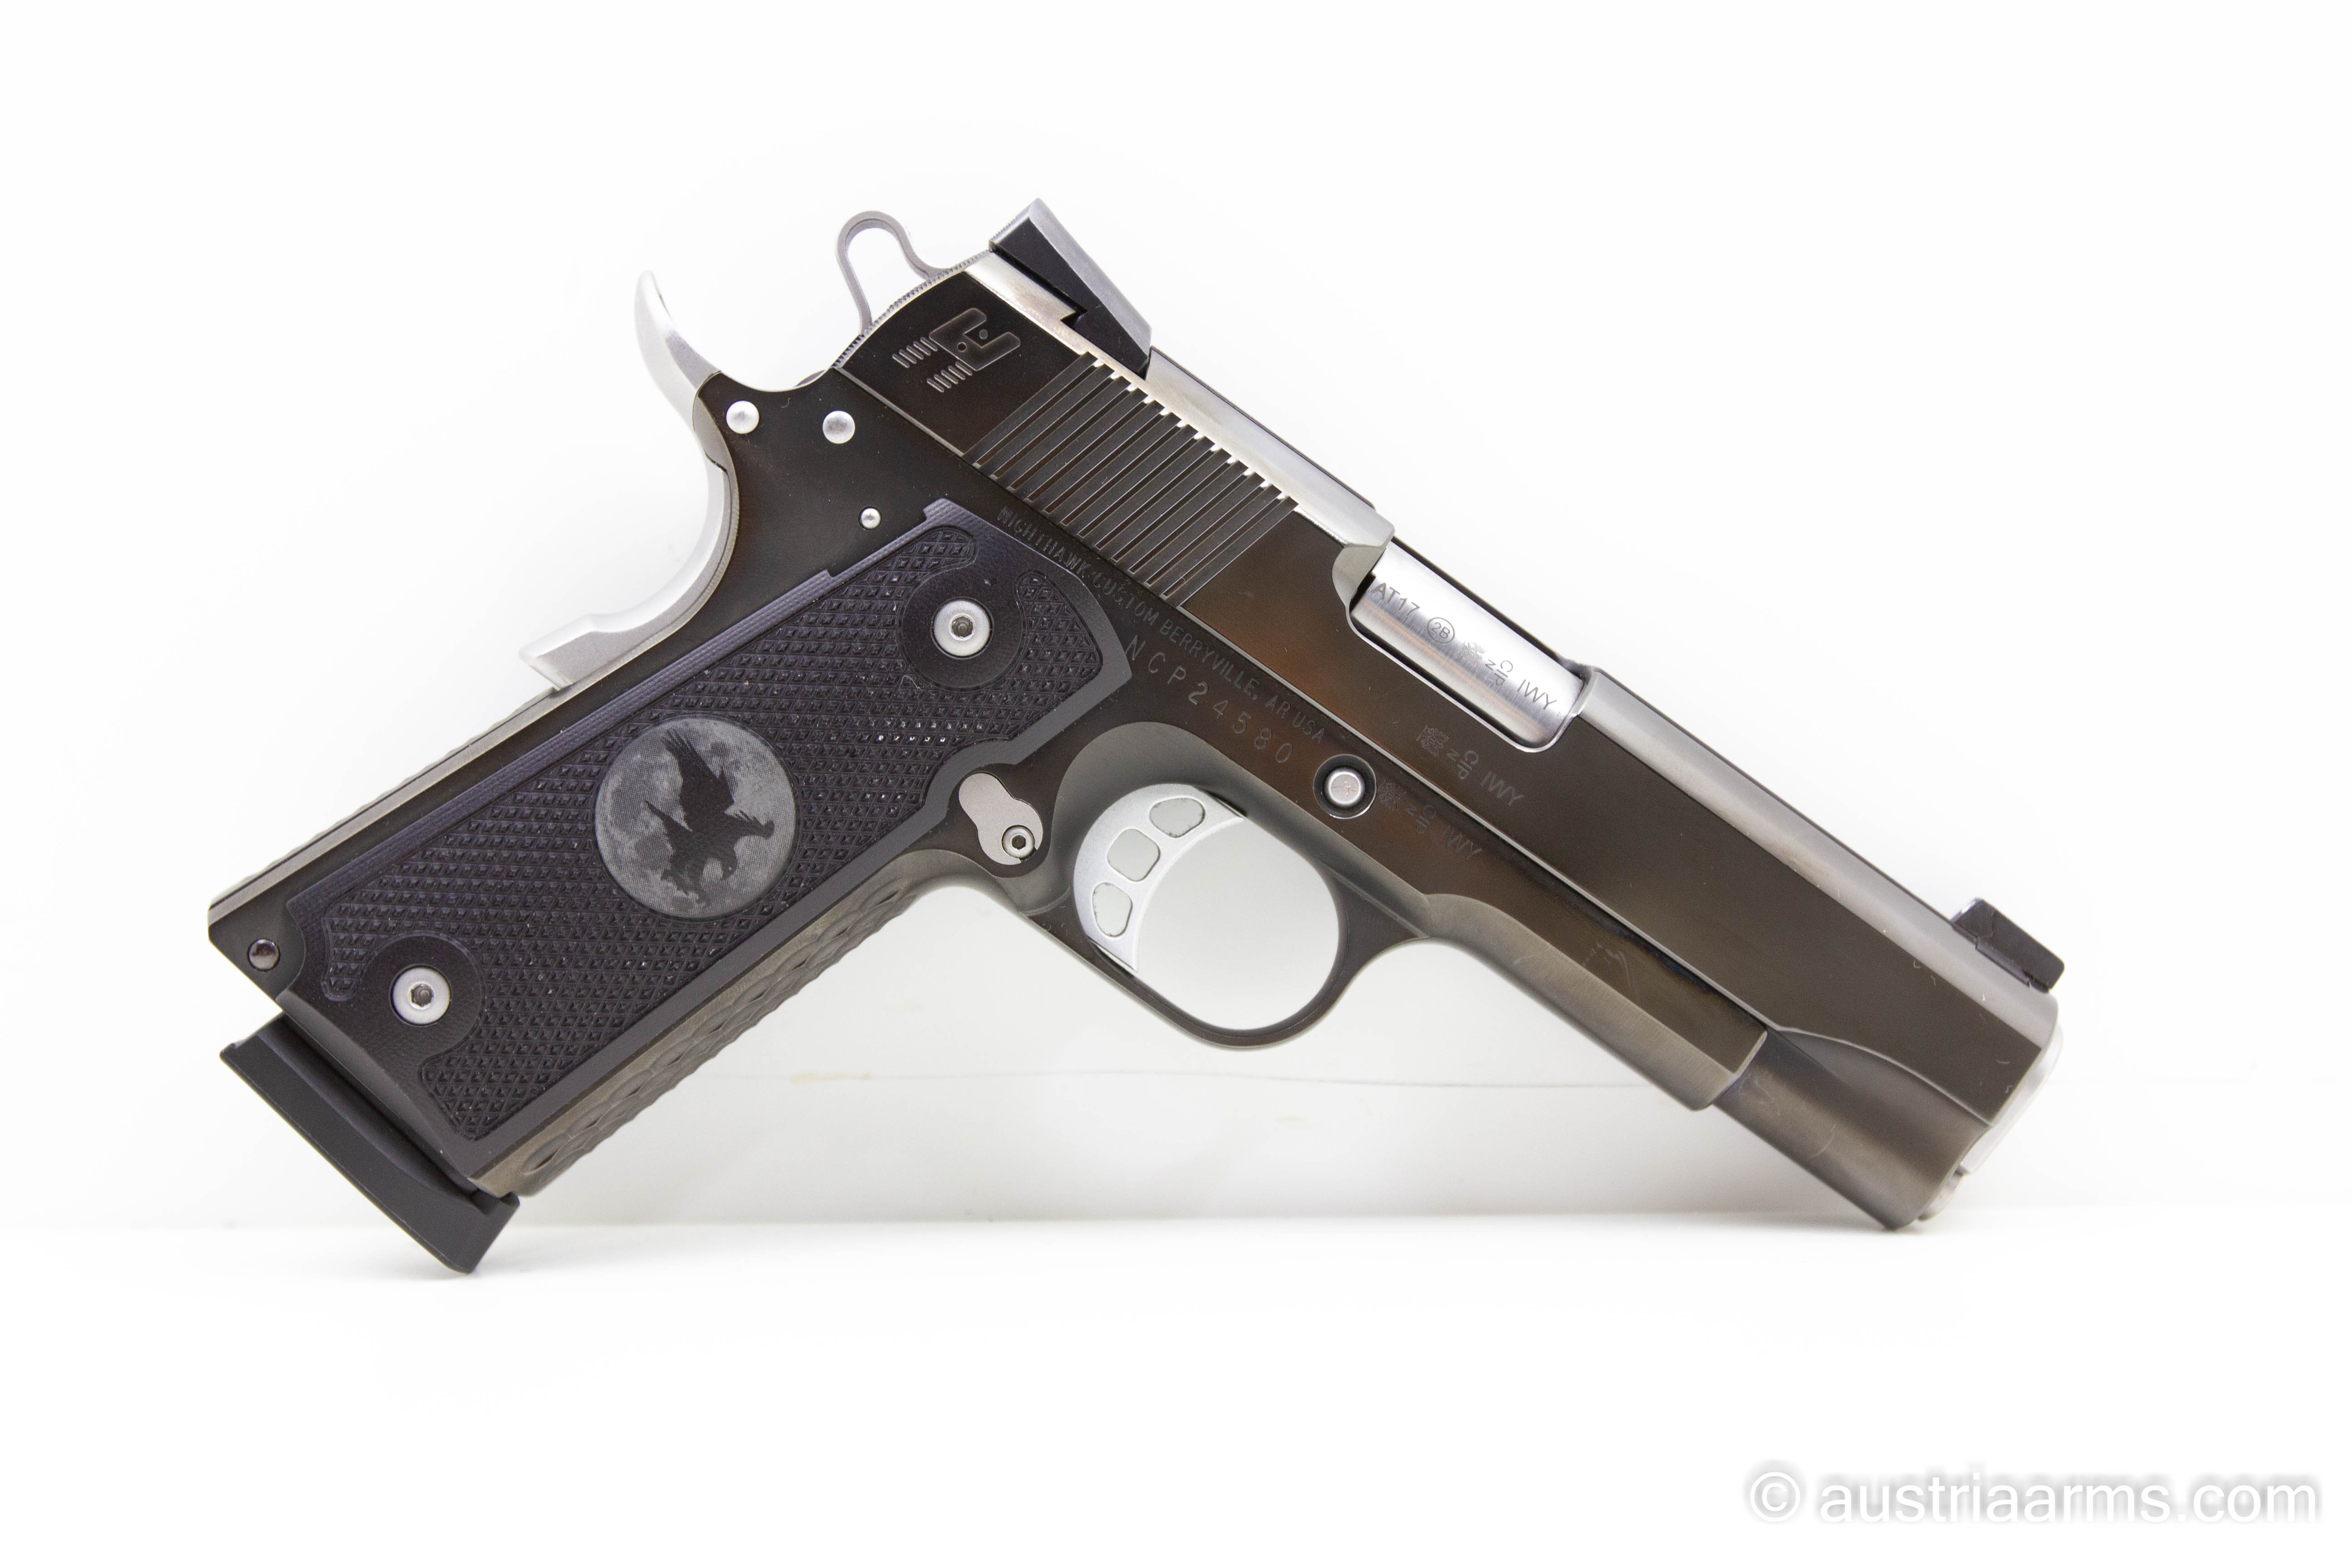 Night Hawk Heinie Custom Commander, 9 x 19 mm - Image 2